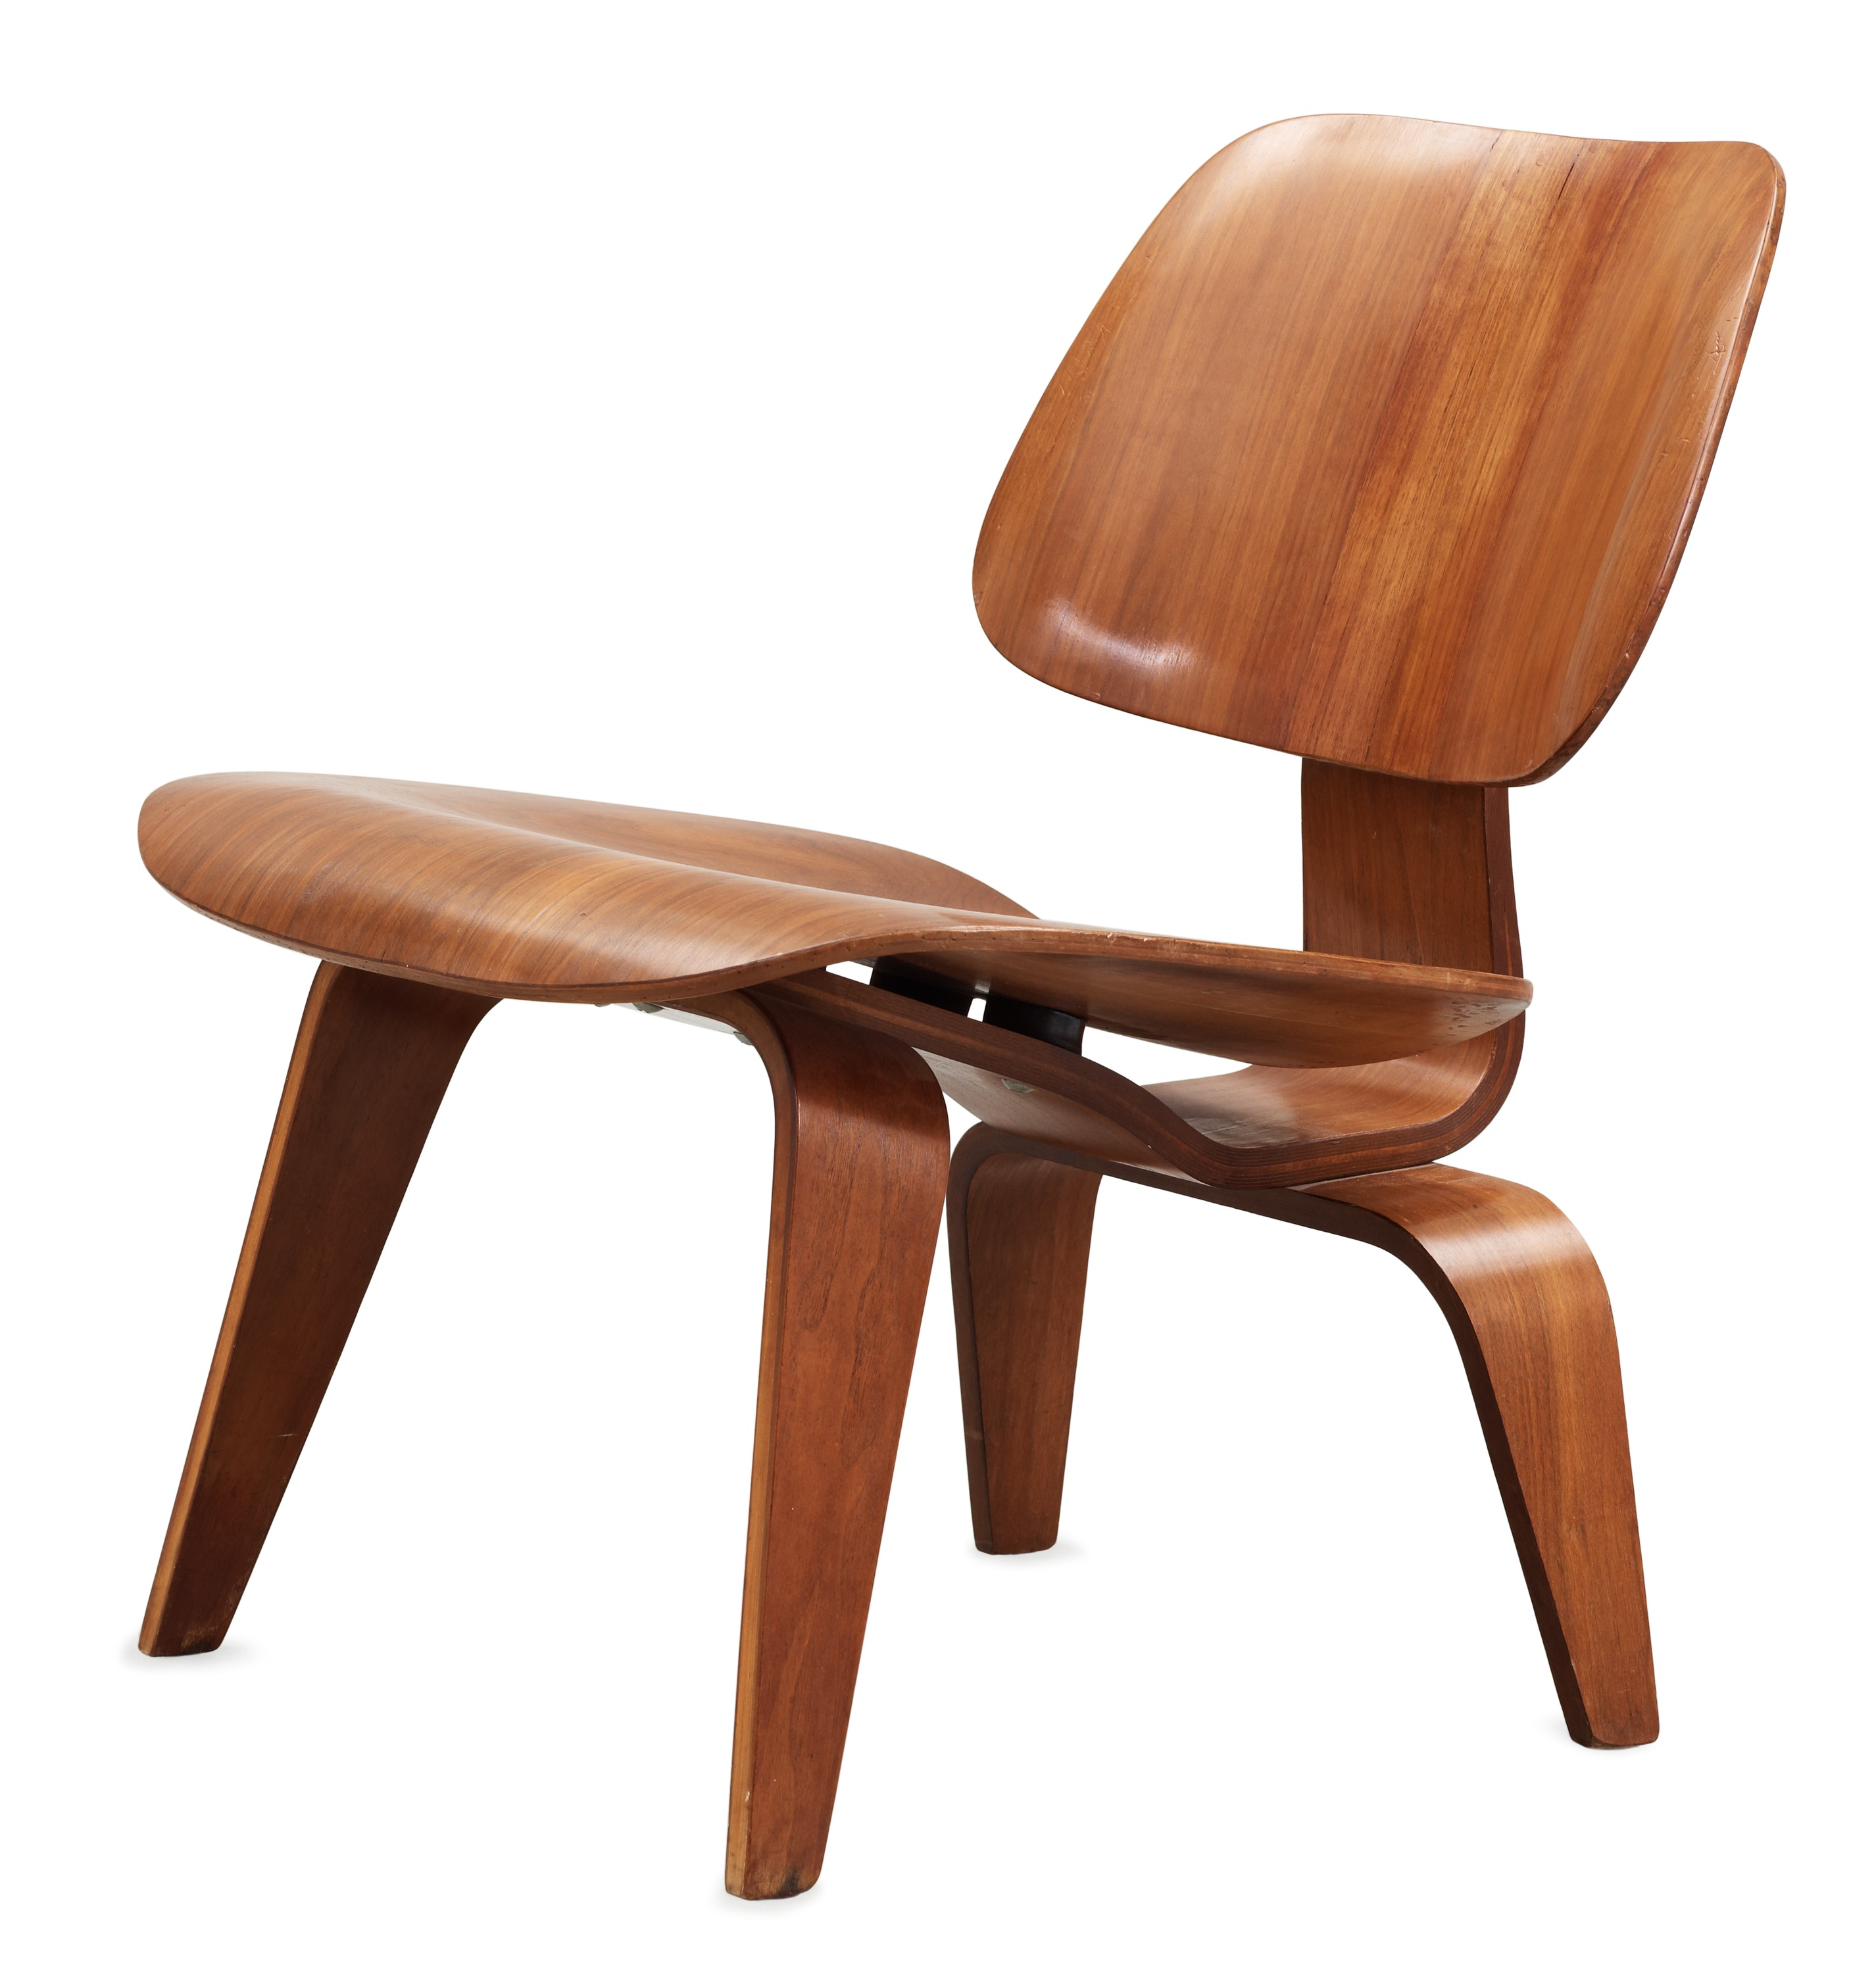 eames lcw chair spandex covers vancouver a charles and ray quotlcw quot easy by herman miller